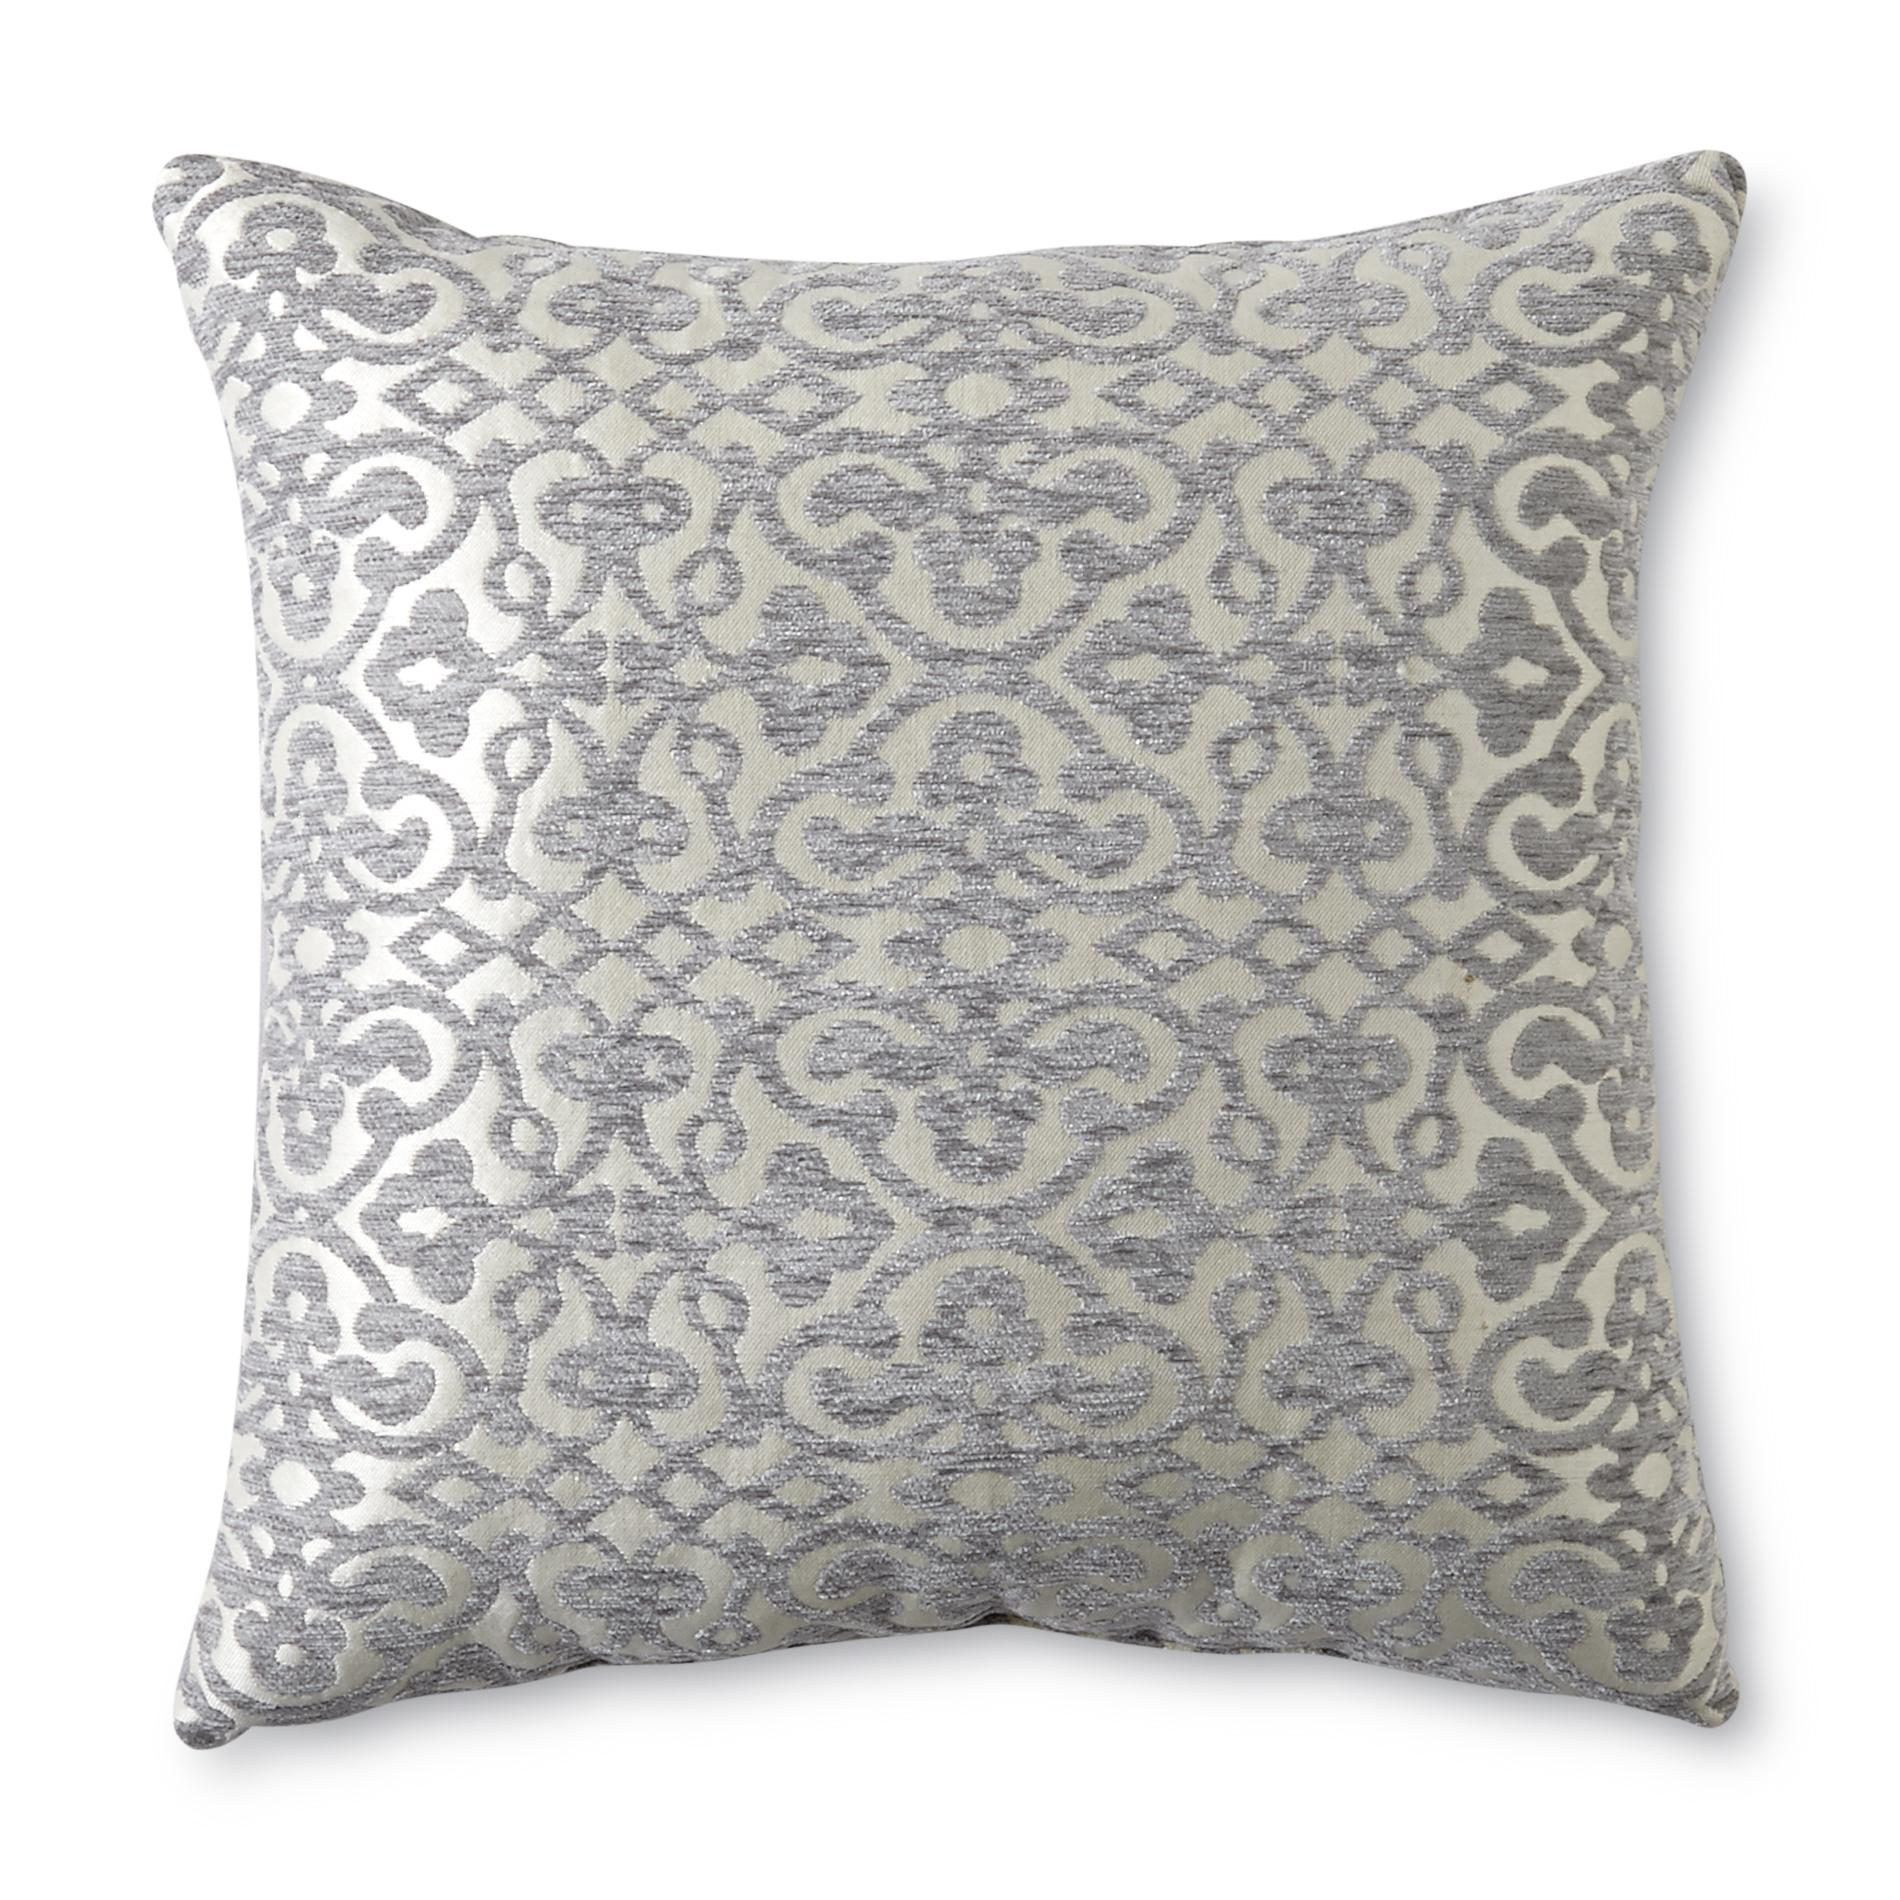 Decorative Pillows Kmart : Woven Decorative Pillow Kmart.com